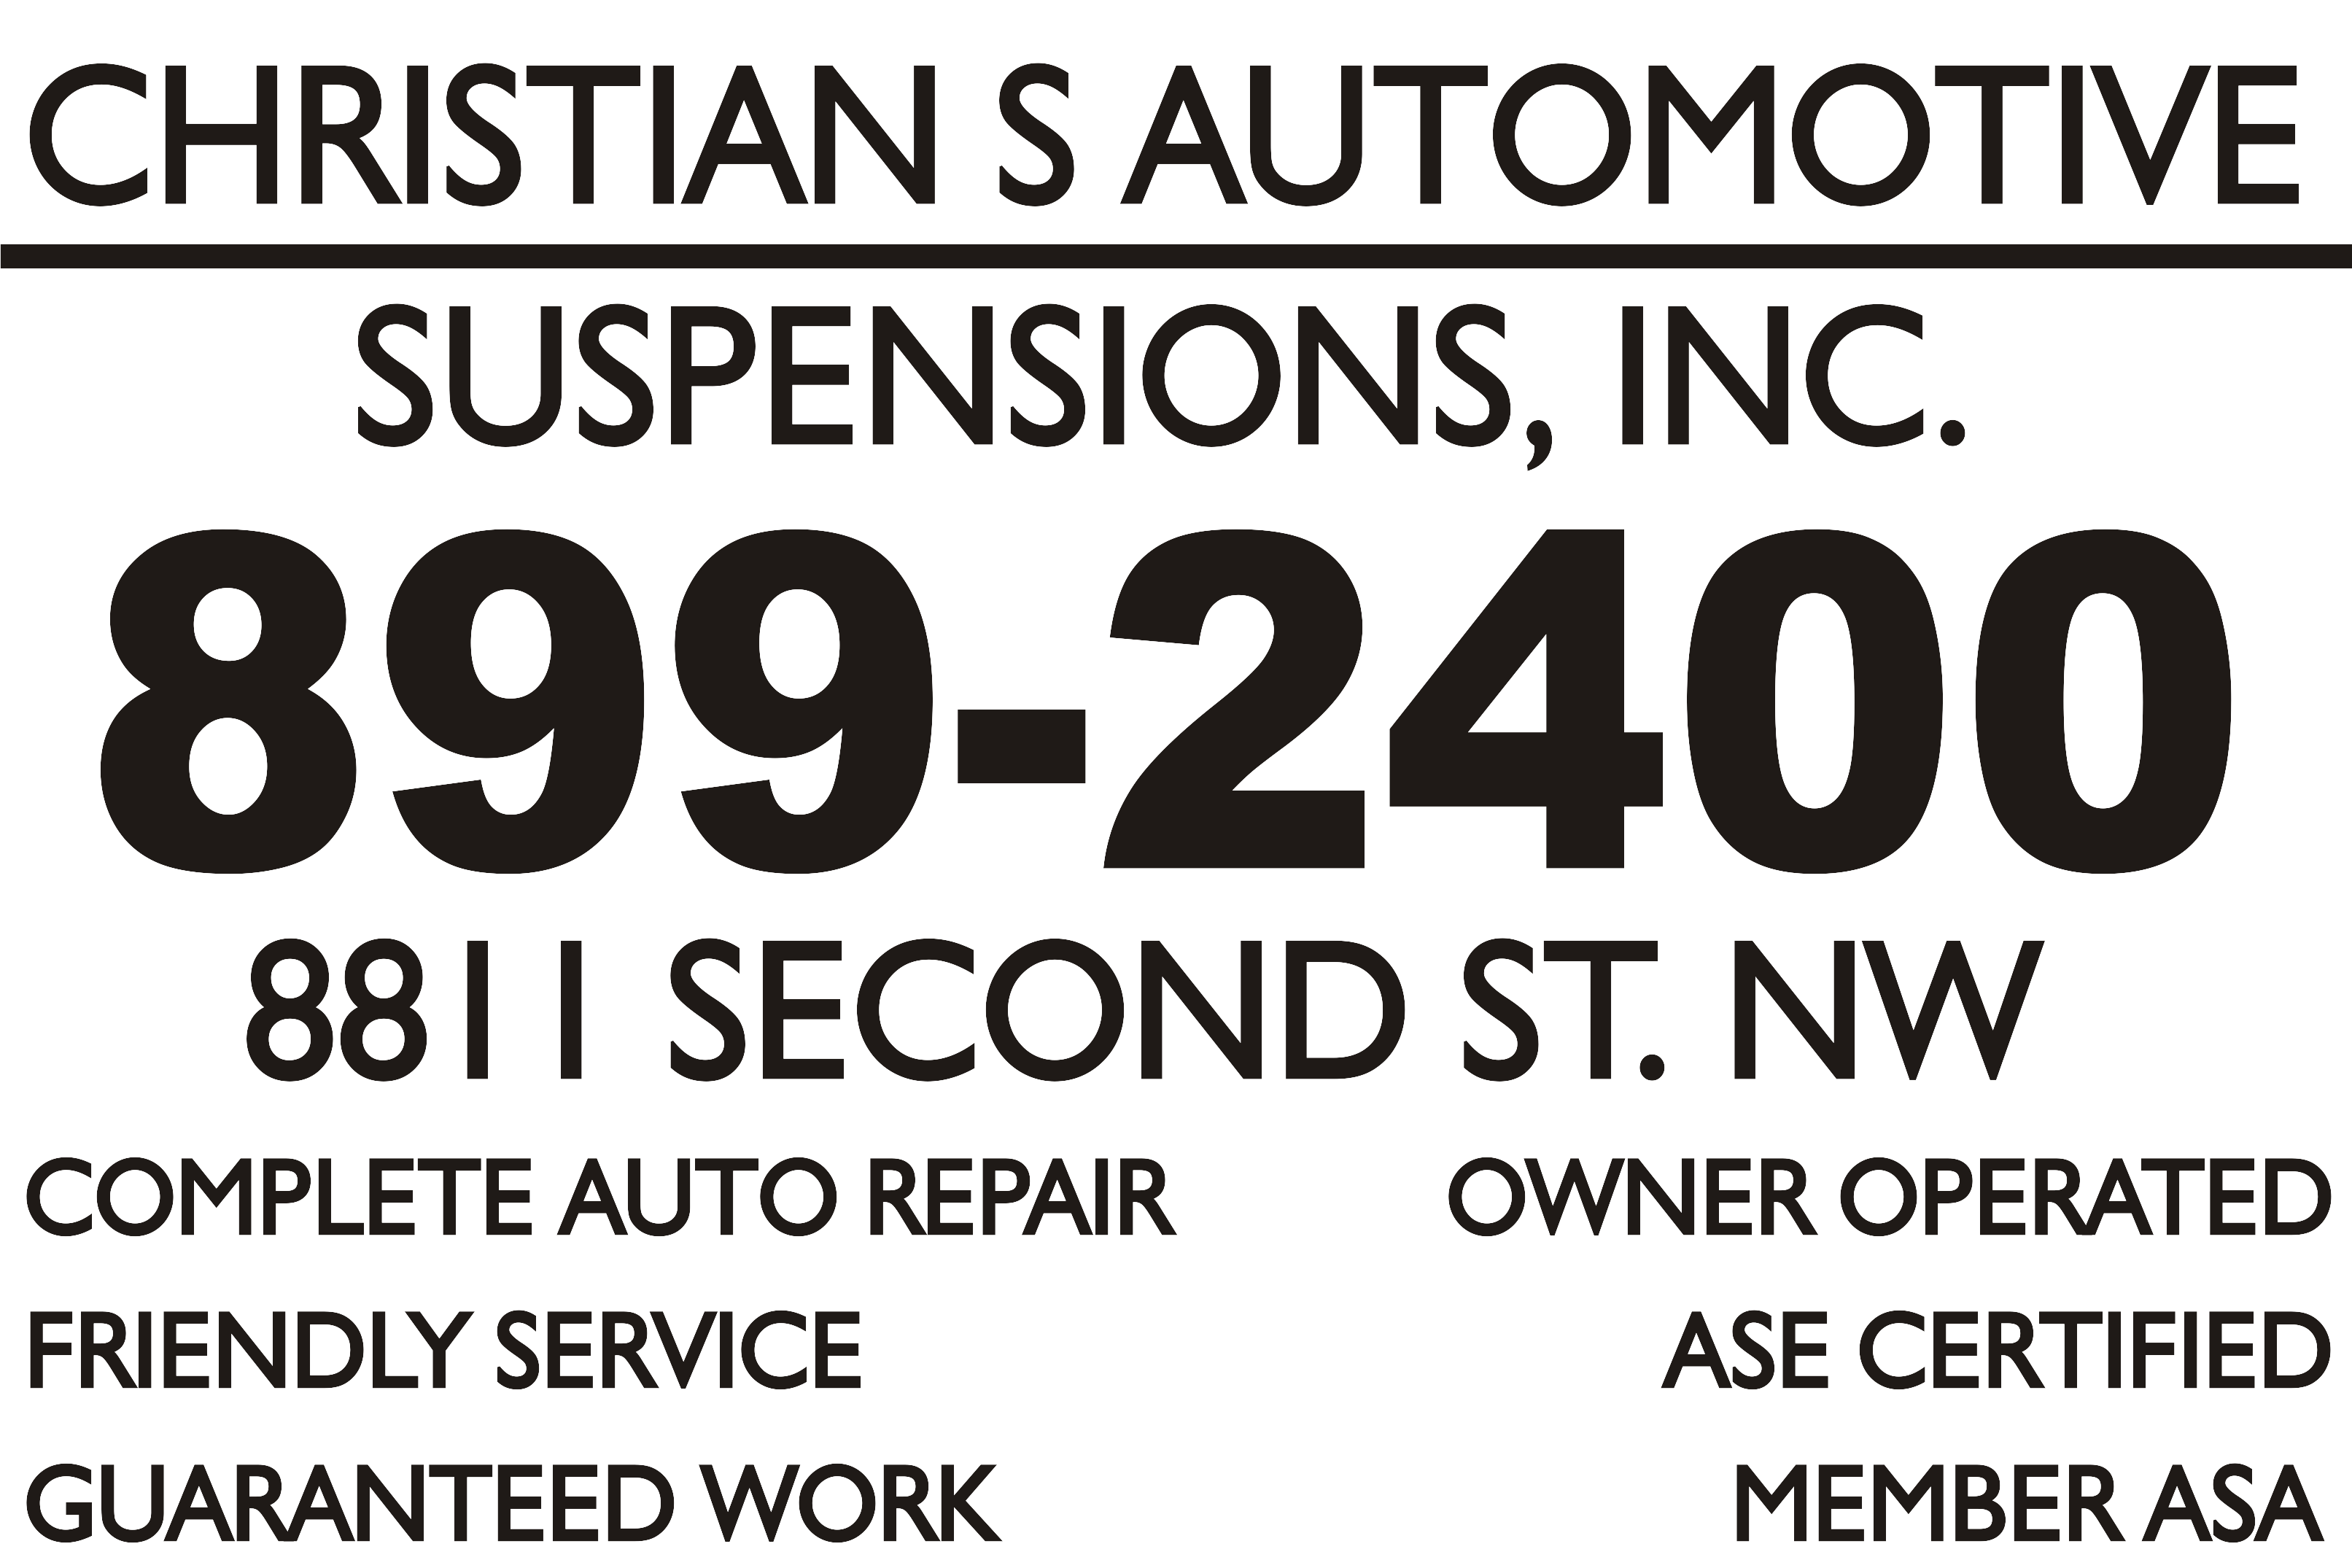 Christians Automotive